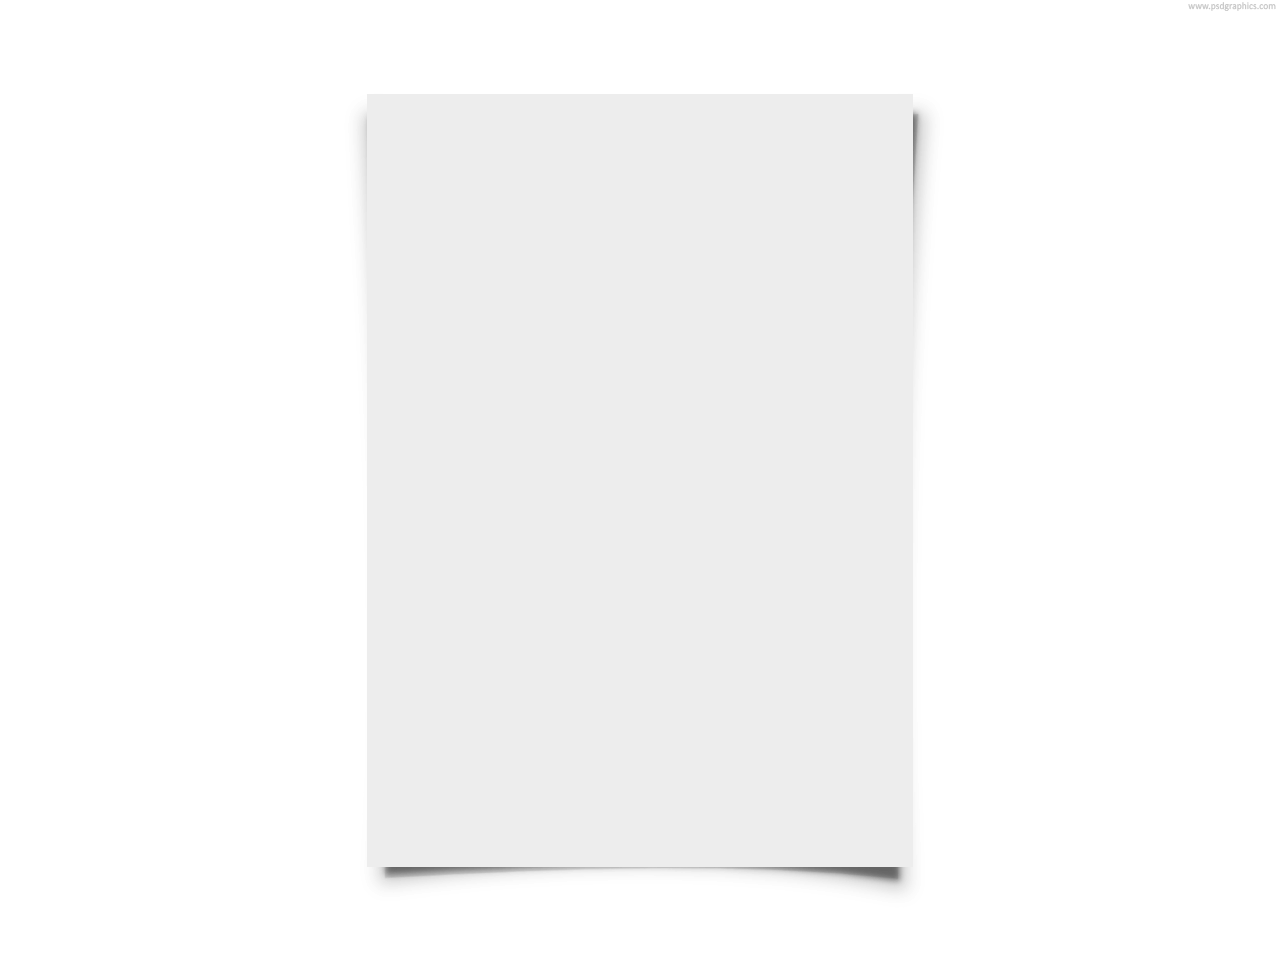 White paper png. Blank psdgraphics transparent